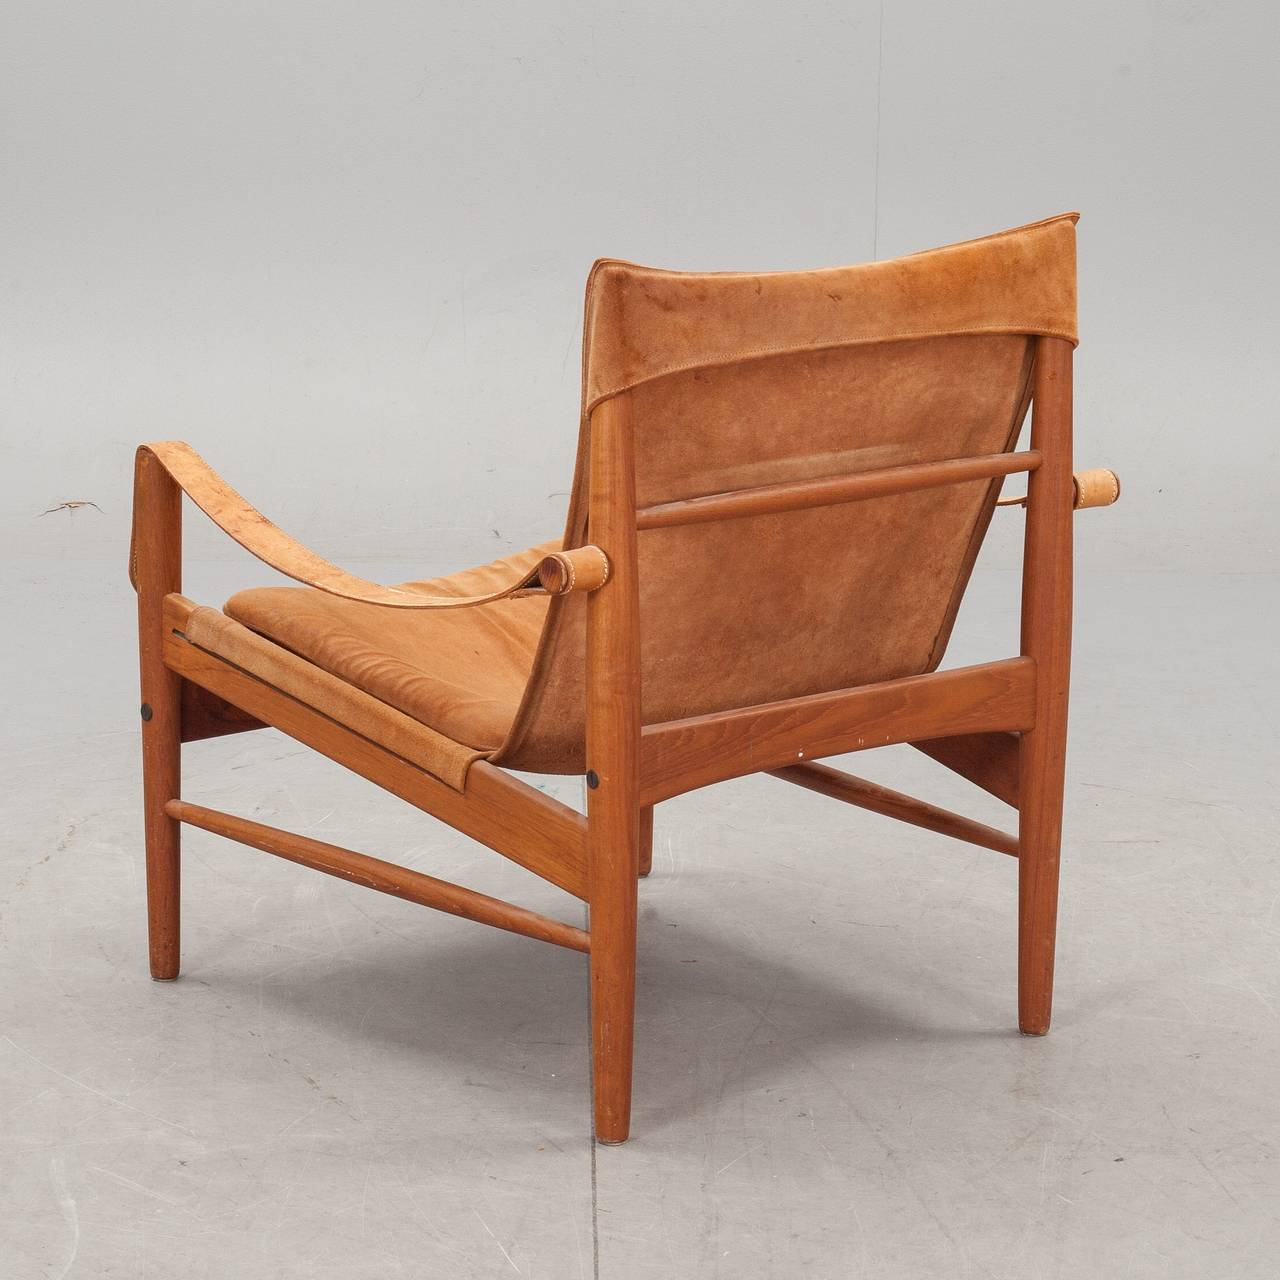 leather safari chair covers ribbons bows hans olsen 1960s suede and at 1stdibs